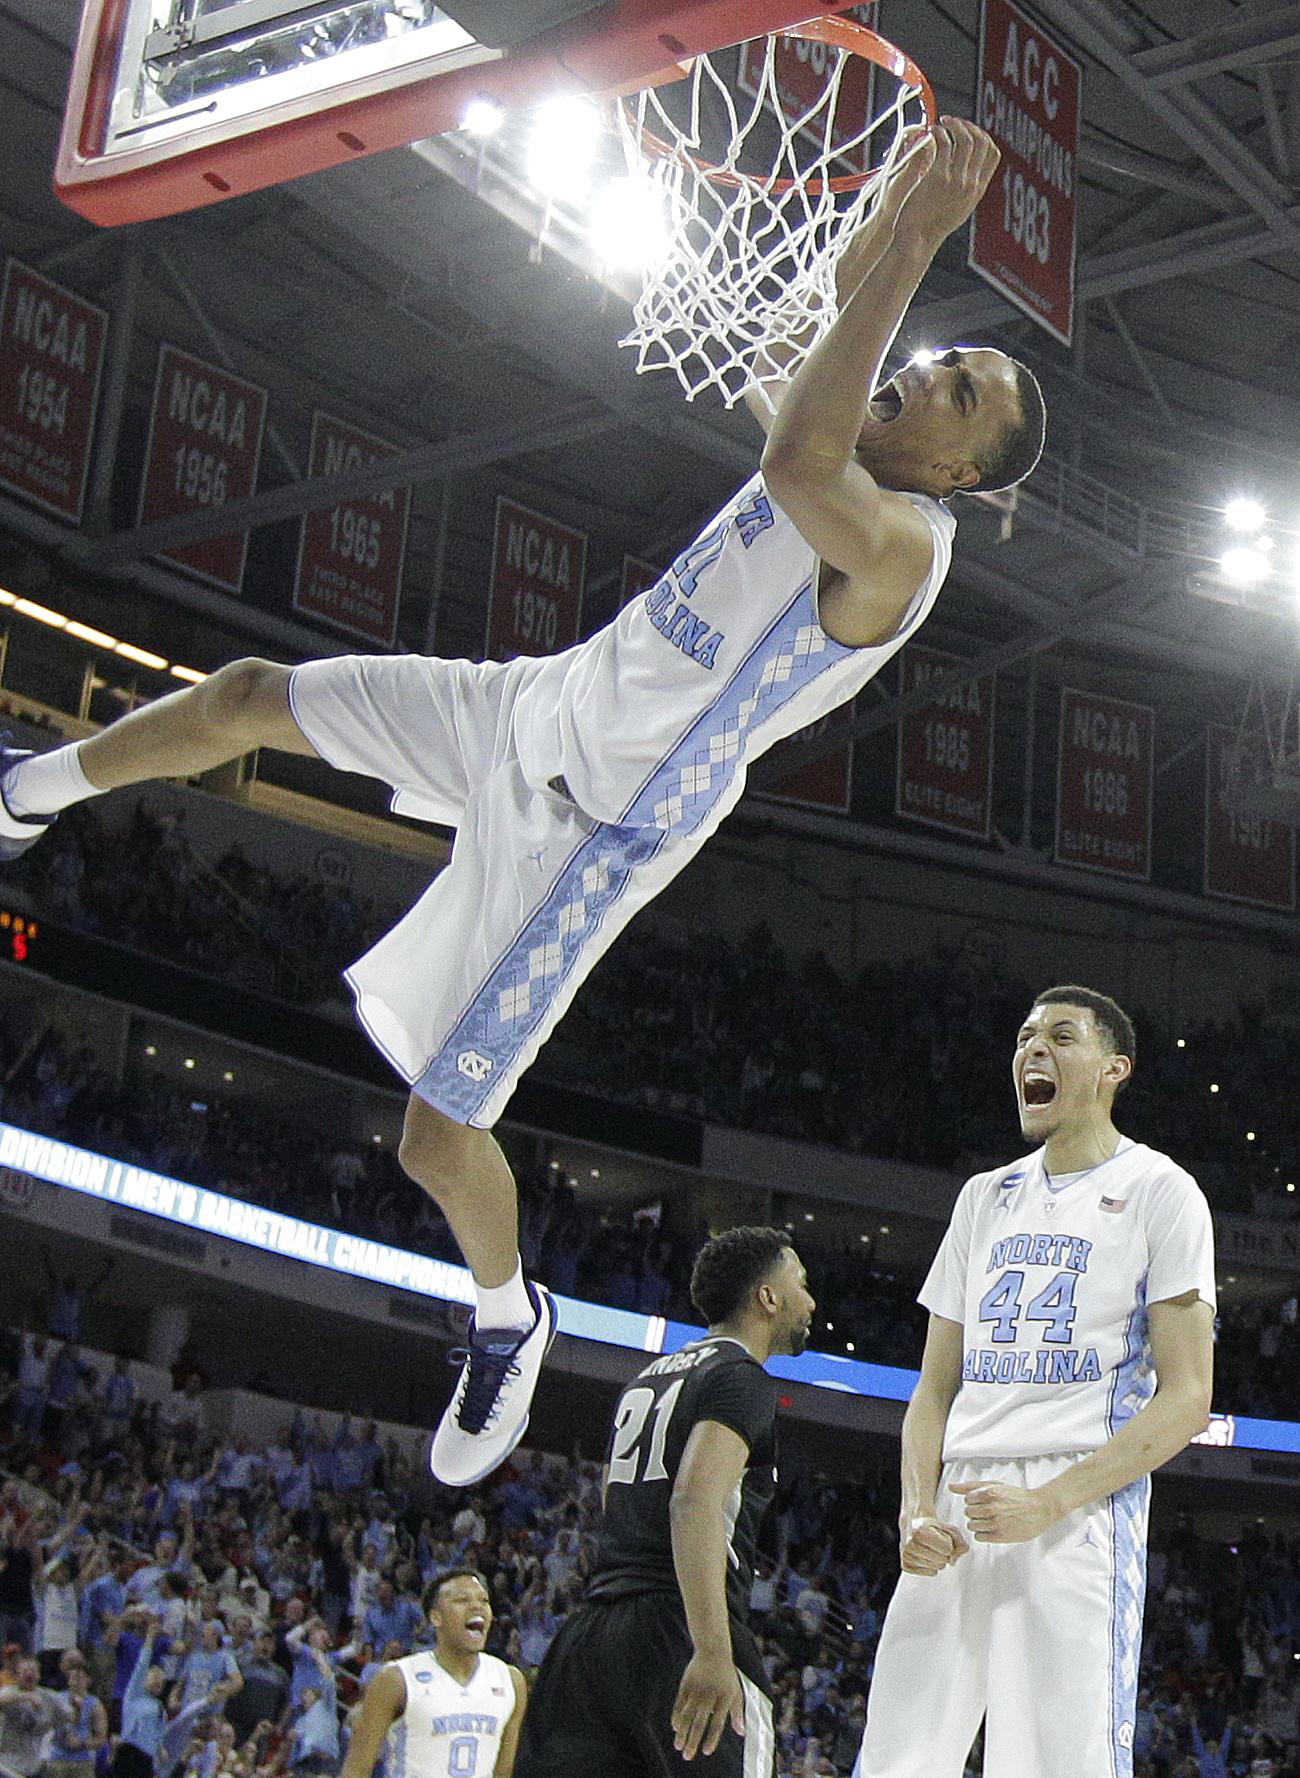 North Carolina forward Brice Johnson (11) celebrates with North Carolina forward Justin Jackson (44) after Johnson dunked the ball against Providence during the second half of a second-round men's college basketball game in the NCAA Tournament, Saturday,